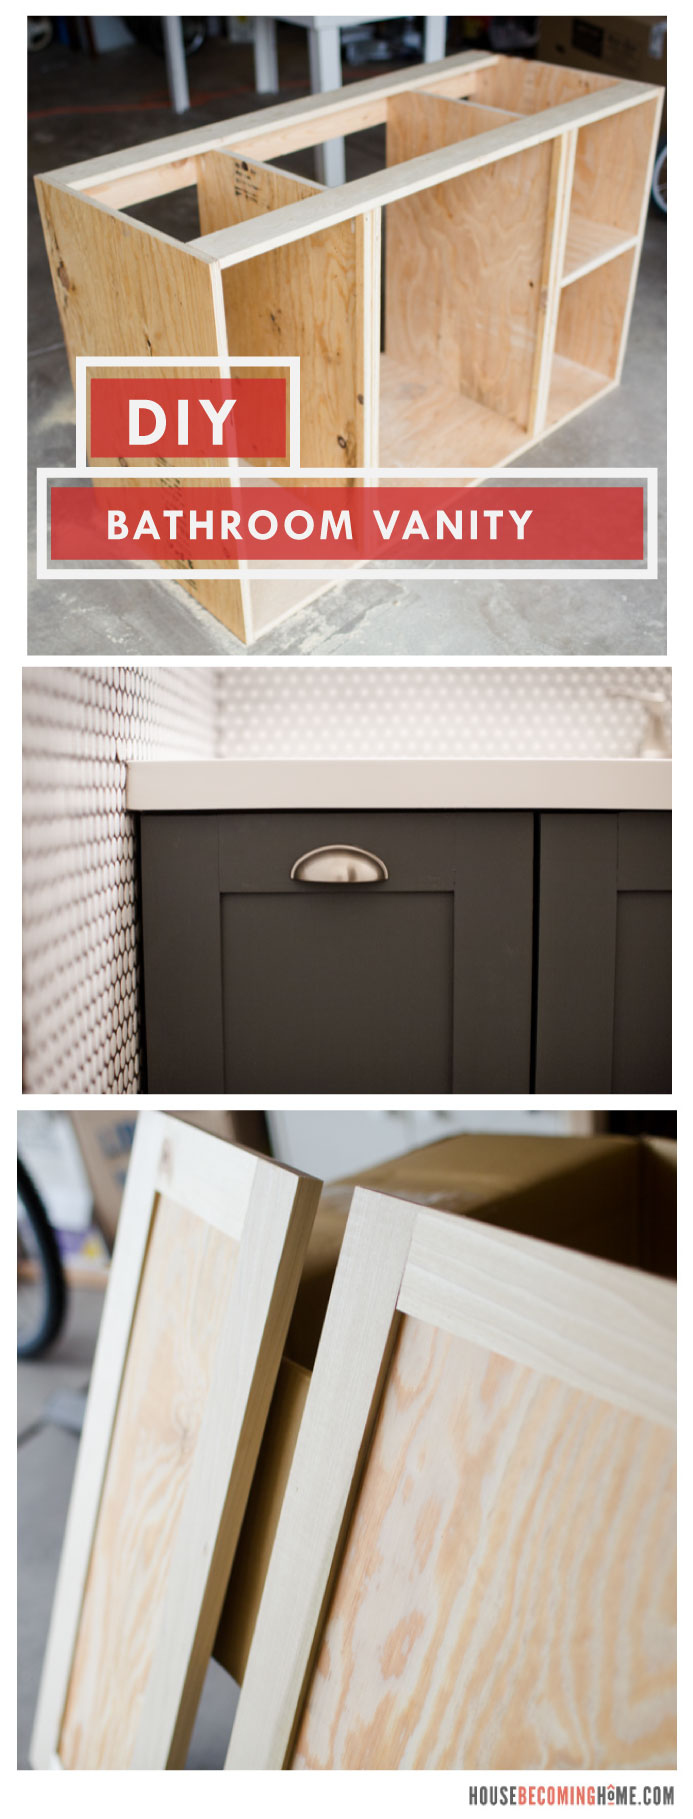 DIY bathroom vanity with shaker style doors collage